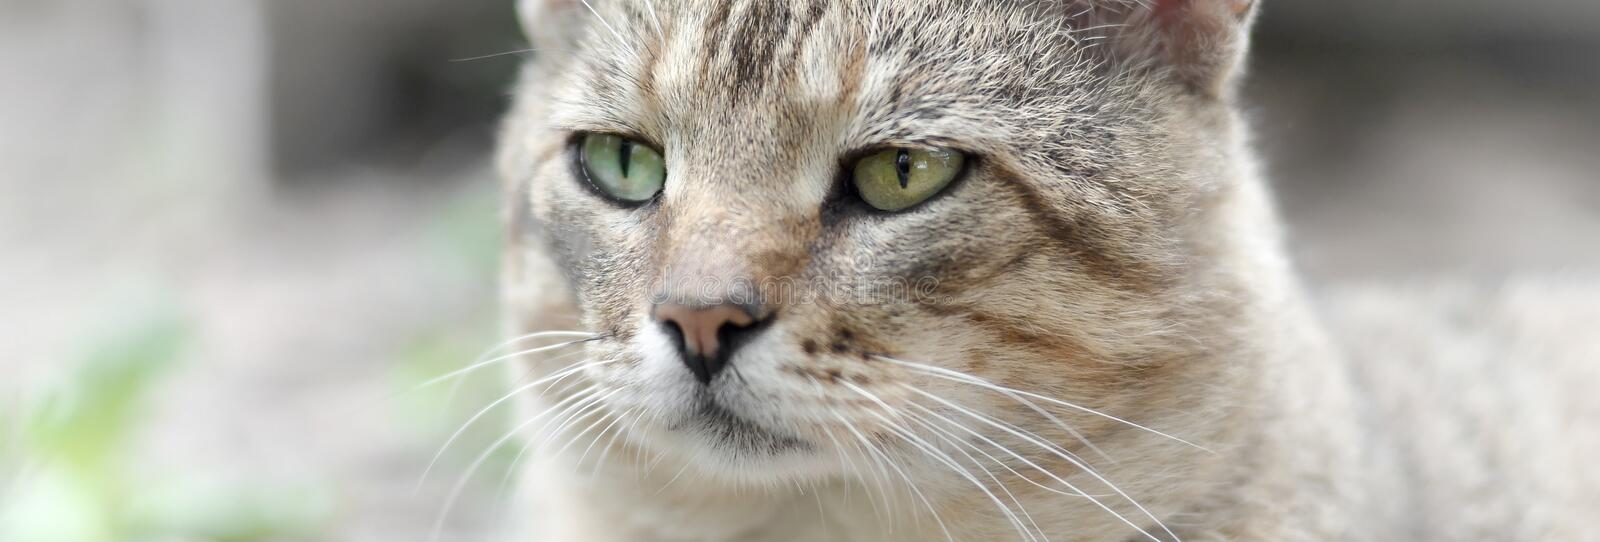 Sad muzzle portrait of a grey striped tabby cat with green eyes, selective focus. Muzzle portrait of a grey striped tabby cat with green eyes, selective focus royalty free stock image